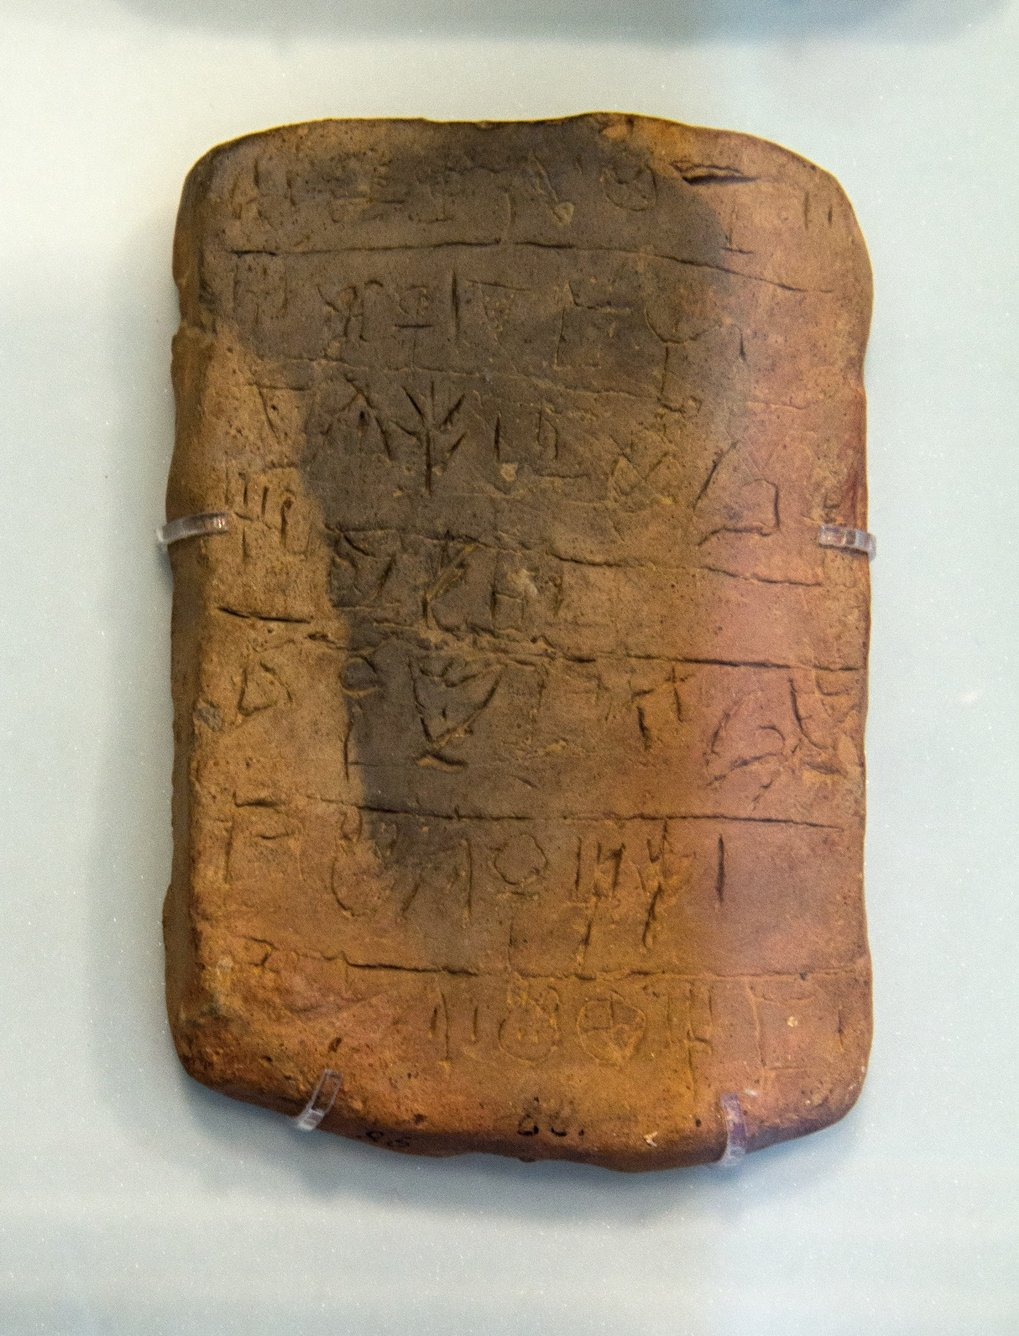 Linear A inscription on a clay tablet from Crete, probably 15th century BC. (Archaeological Museum of Heraklion).